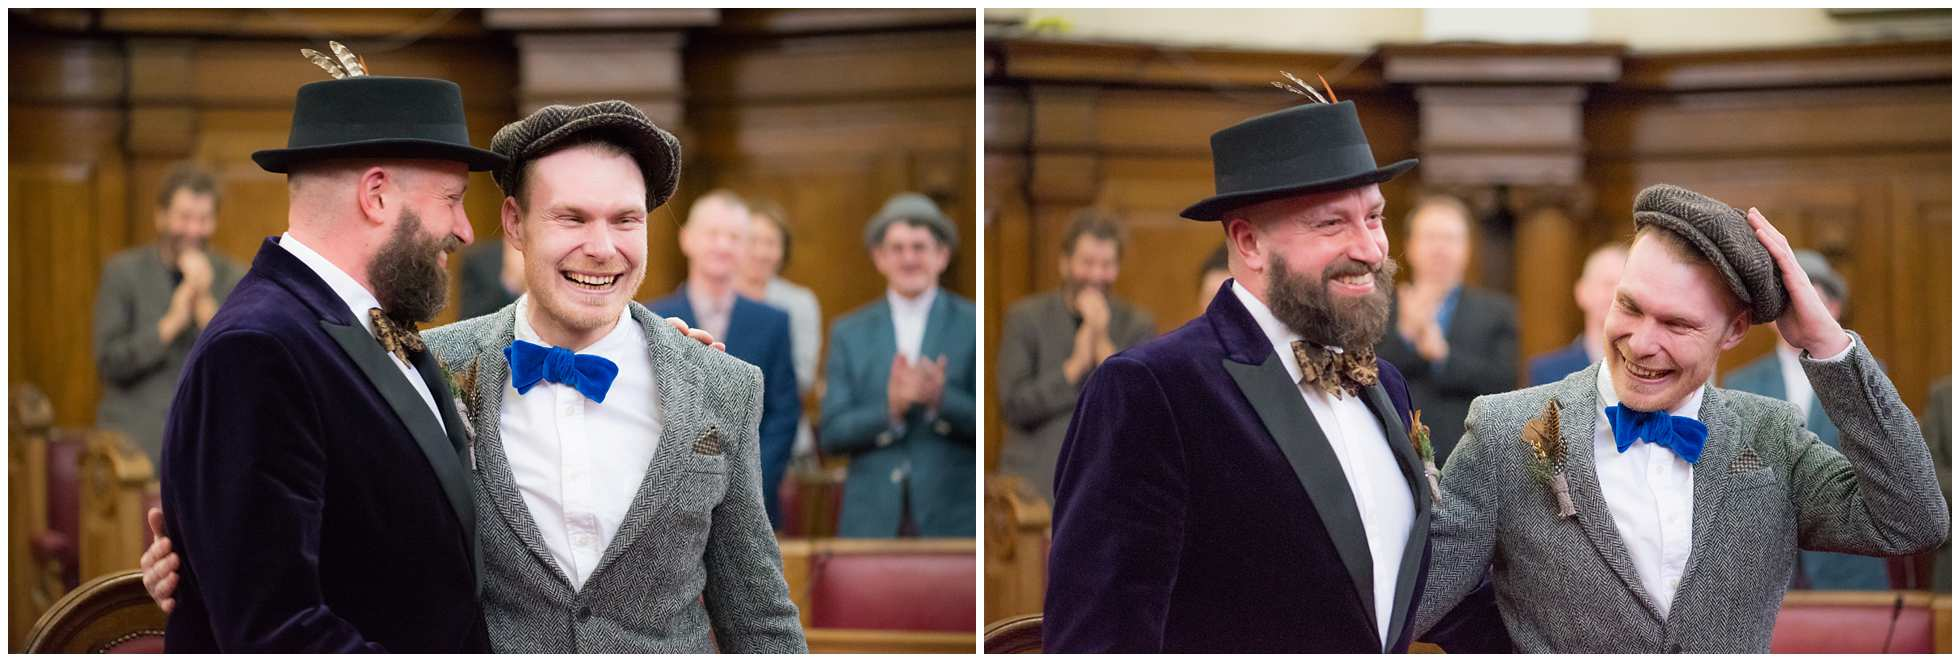 two grooms at islington town hall very much in love